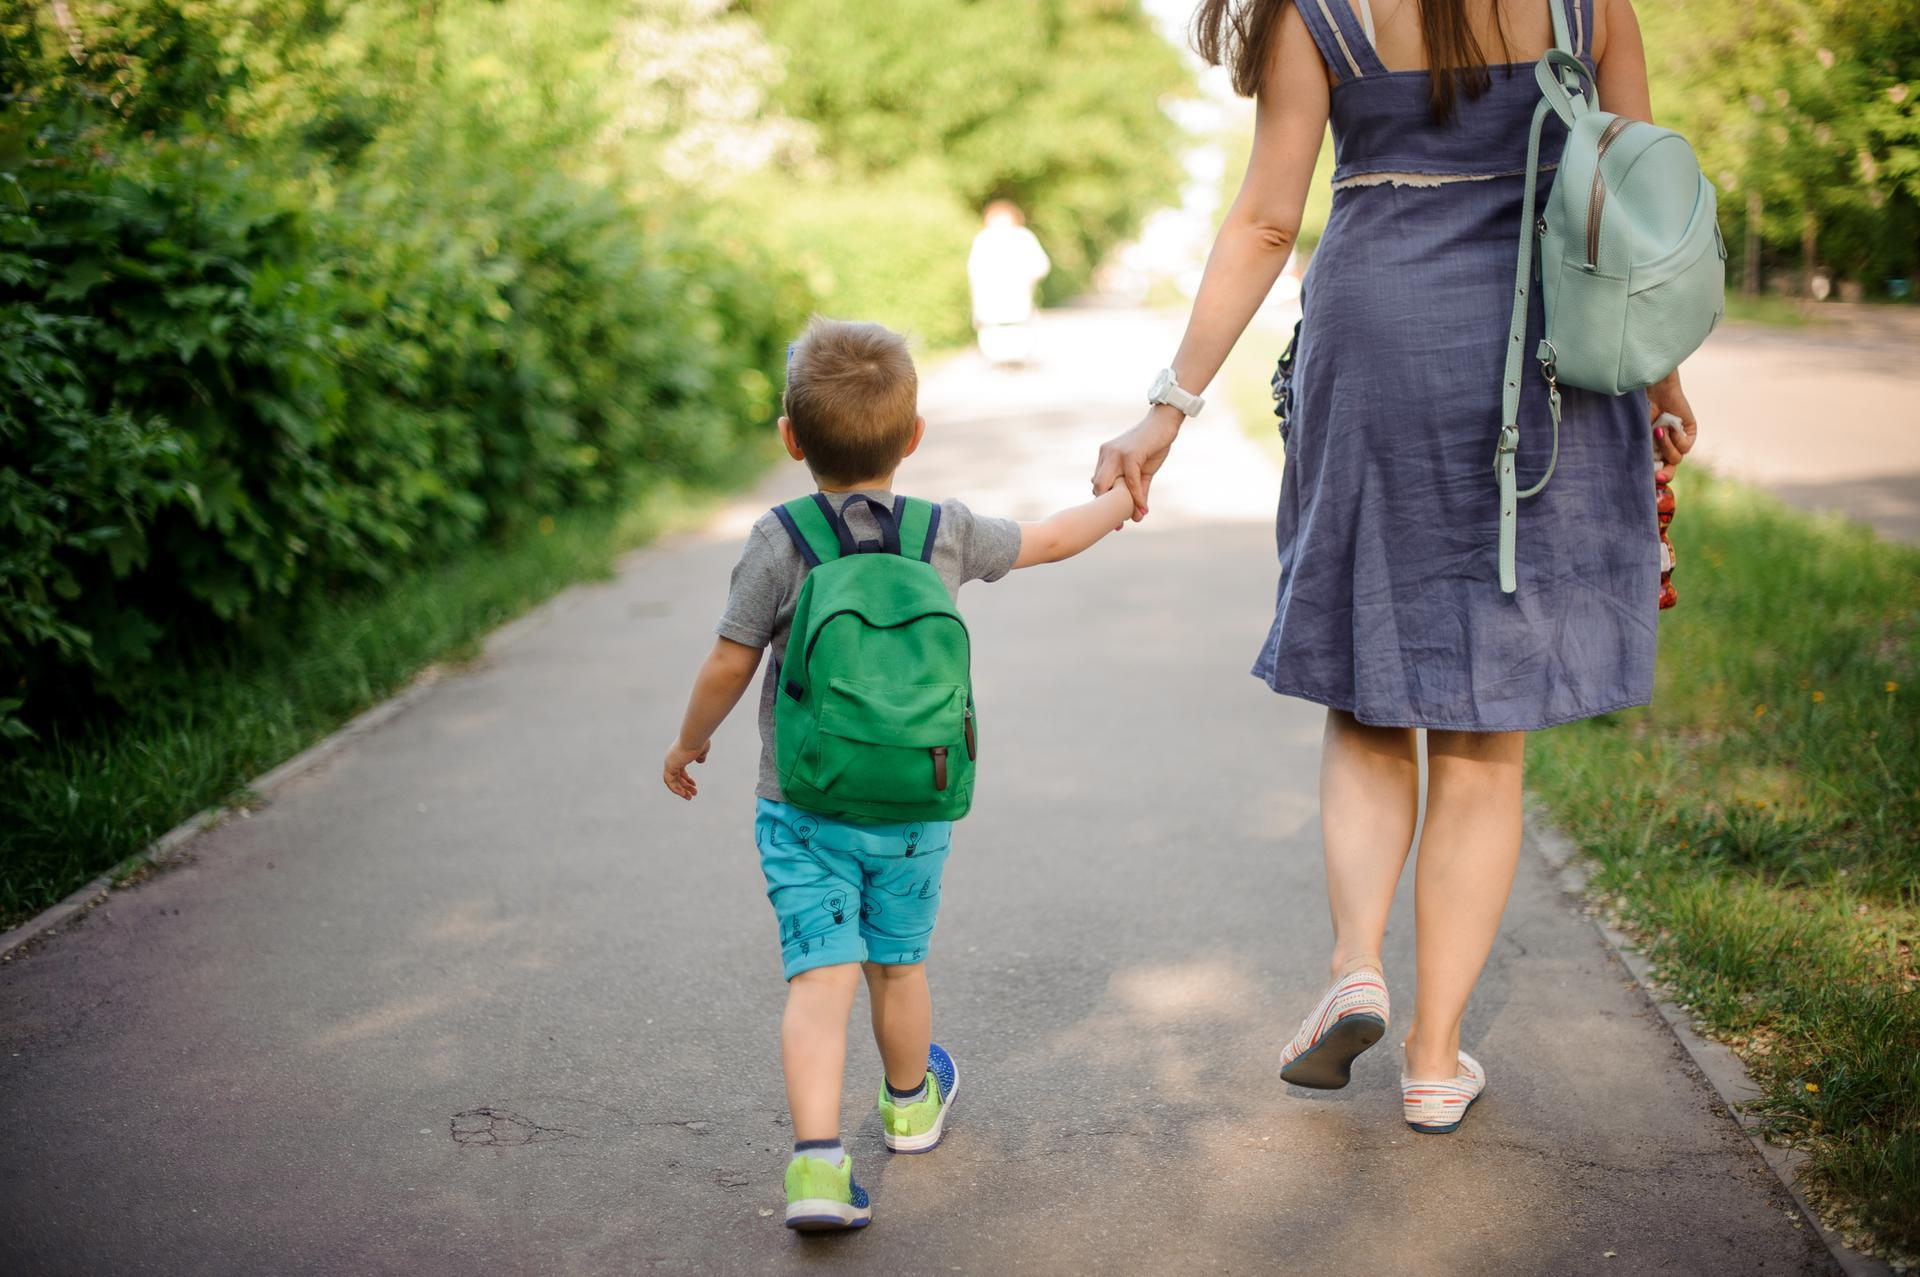 View from behind of a woman holding the hand of a boy wearing a green backpack as they walk down a sidewalk